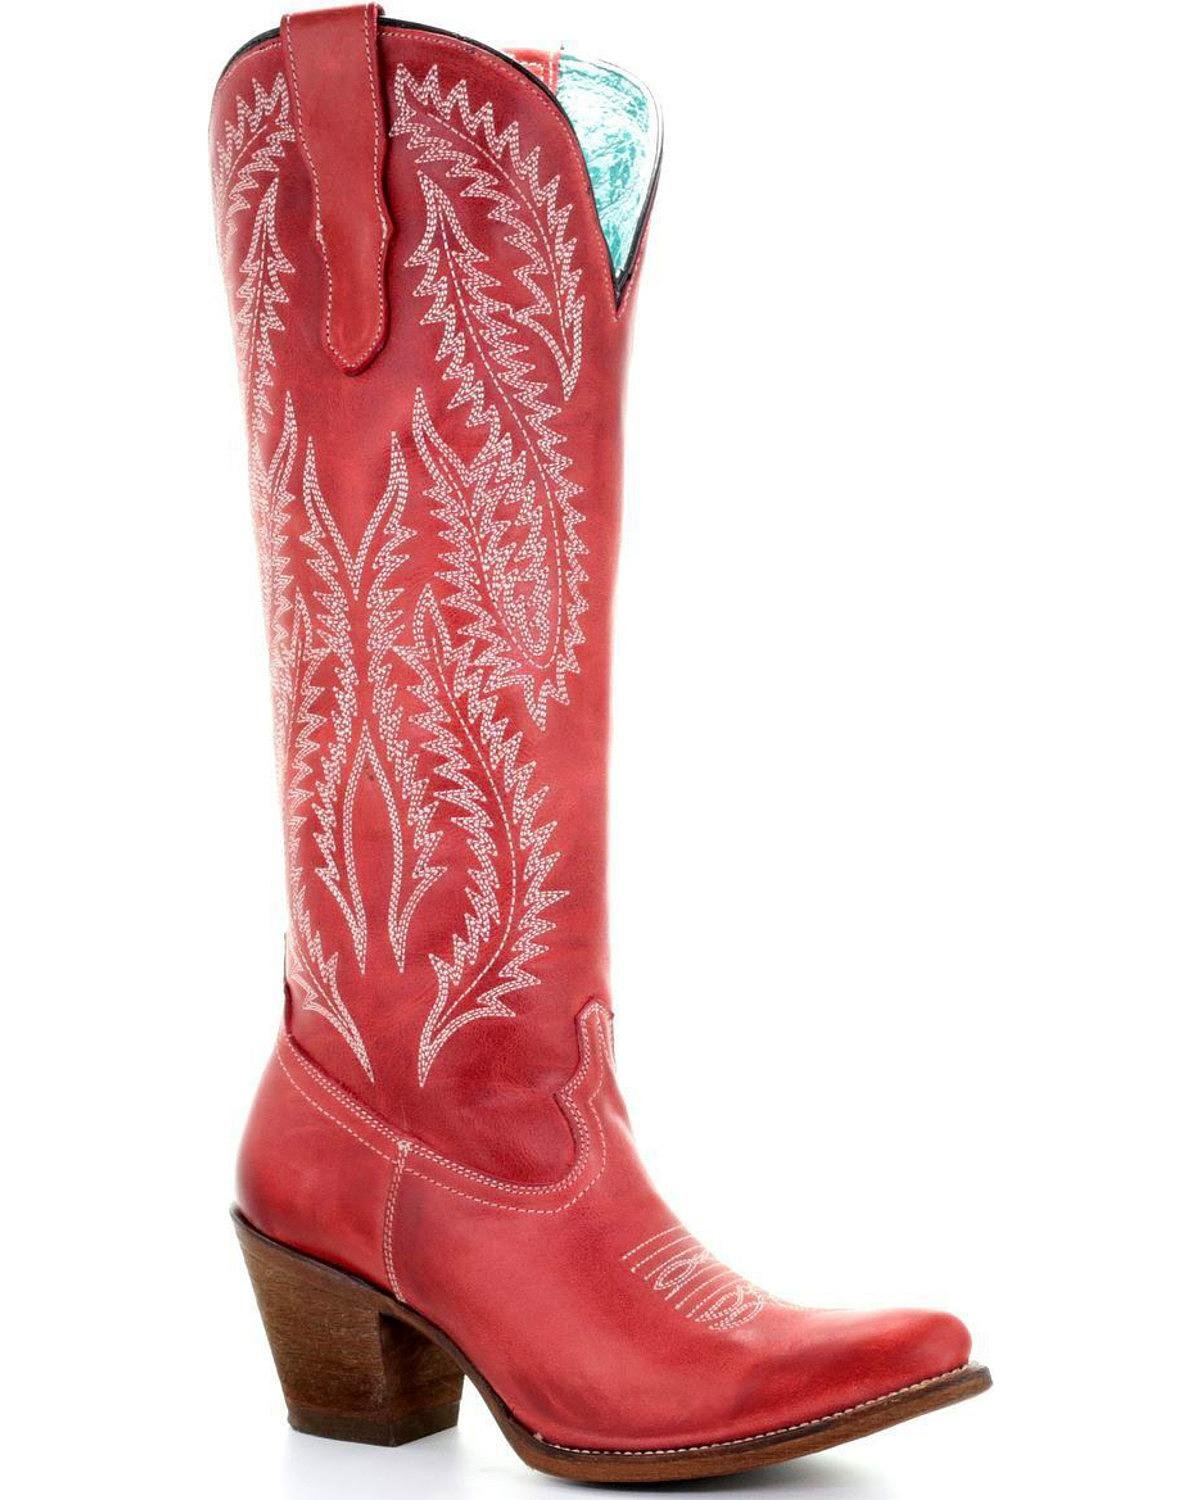 CORRAL Women's Embroidery Tall Top Western Boot Round Toe - E1318 B077Z8FKF8 8.5 B(M) US|Red